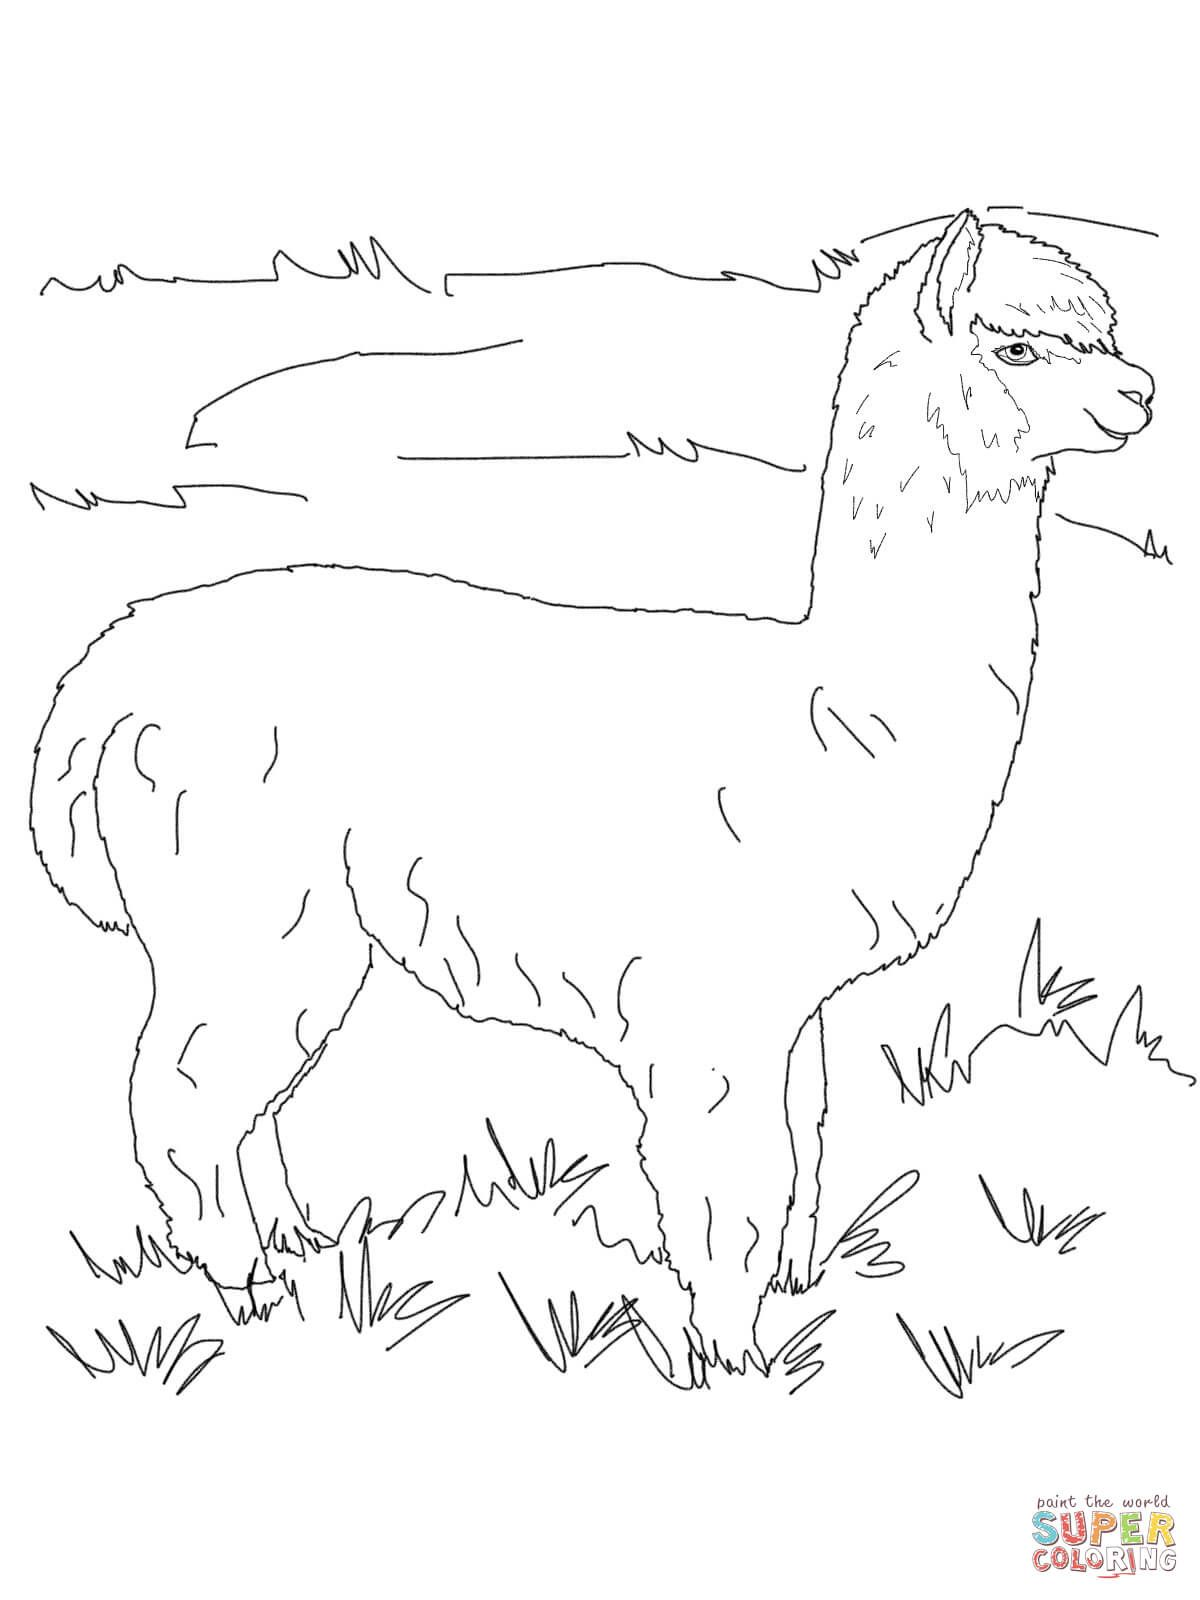 Alpaca Coloring Pages Free Coloring Pages Coloring Book Art Coloring Pages Alpaca